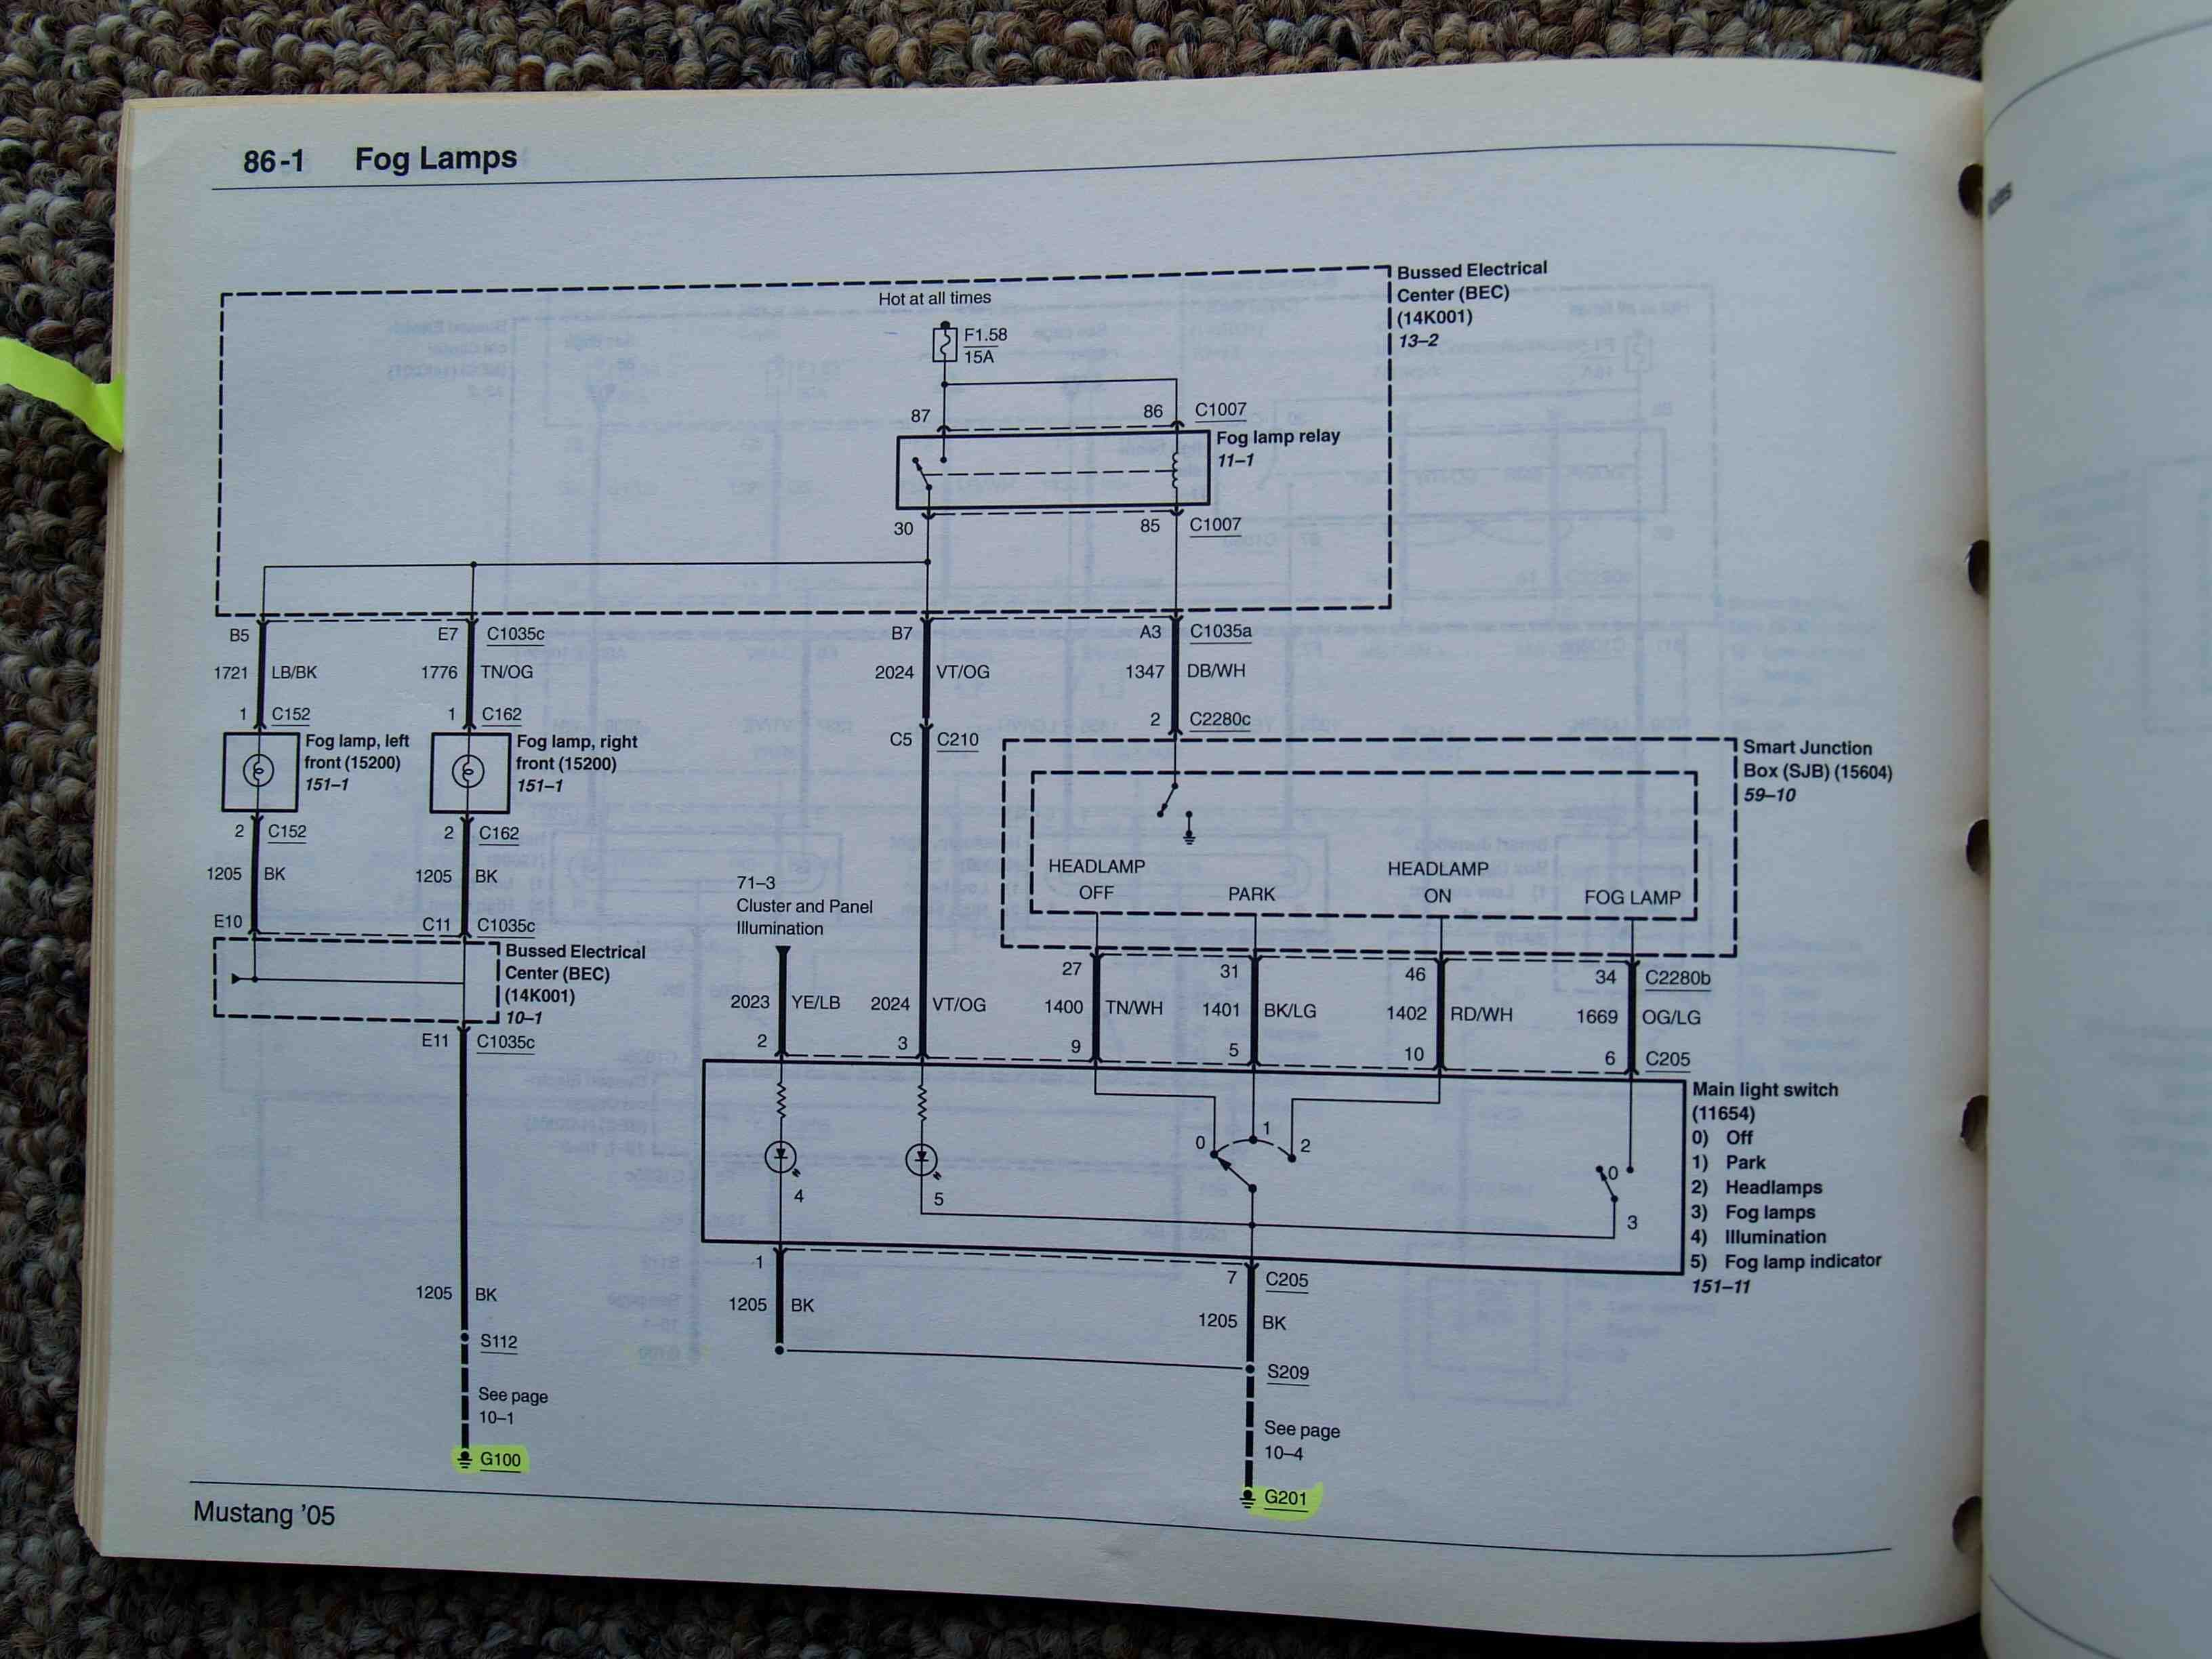 wiring diagram for 1969 ford mustang 2008 gt headlight wiring diagram? - ford mustang forum